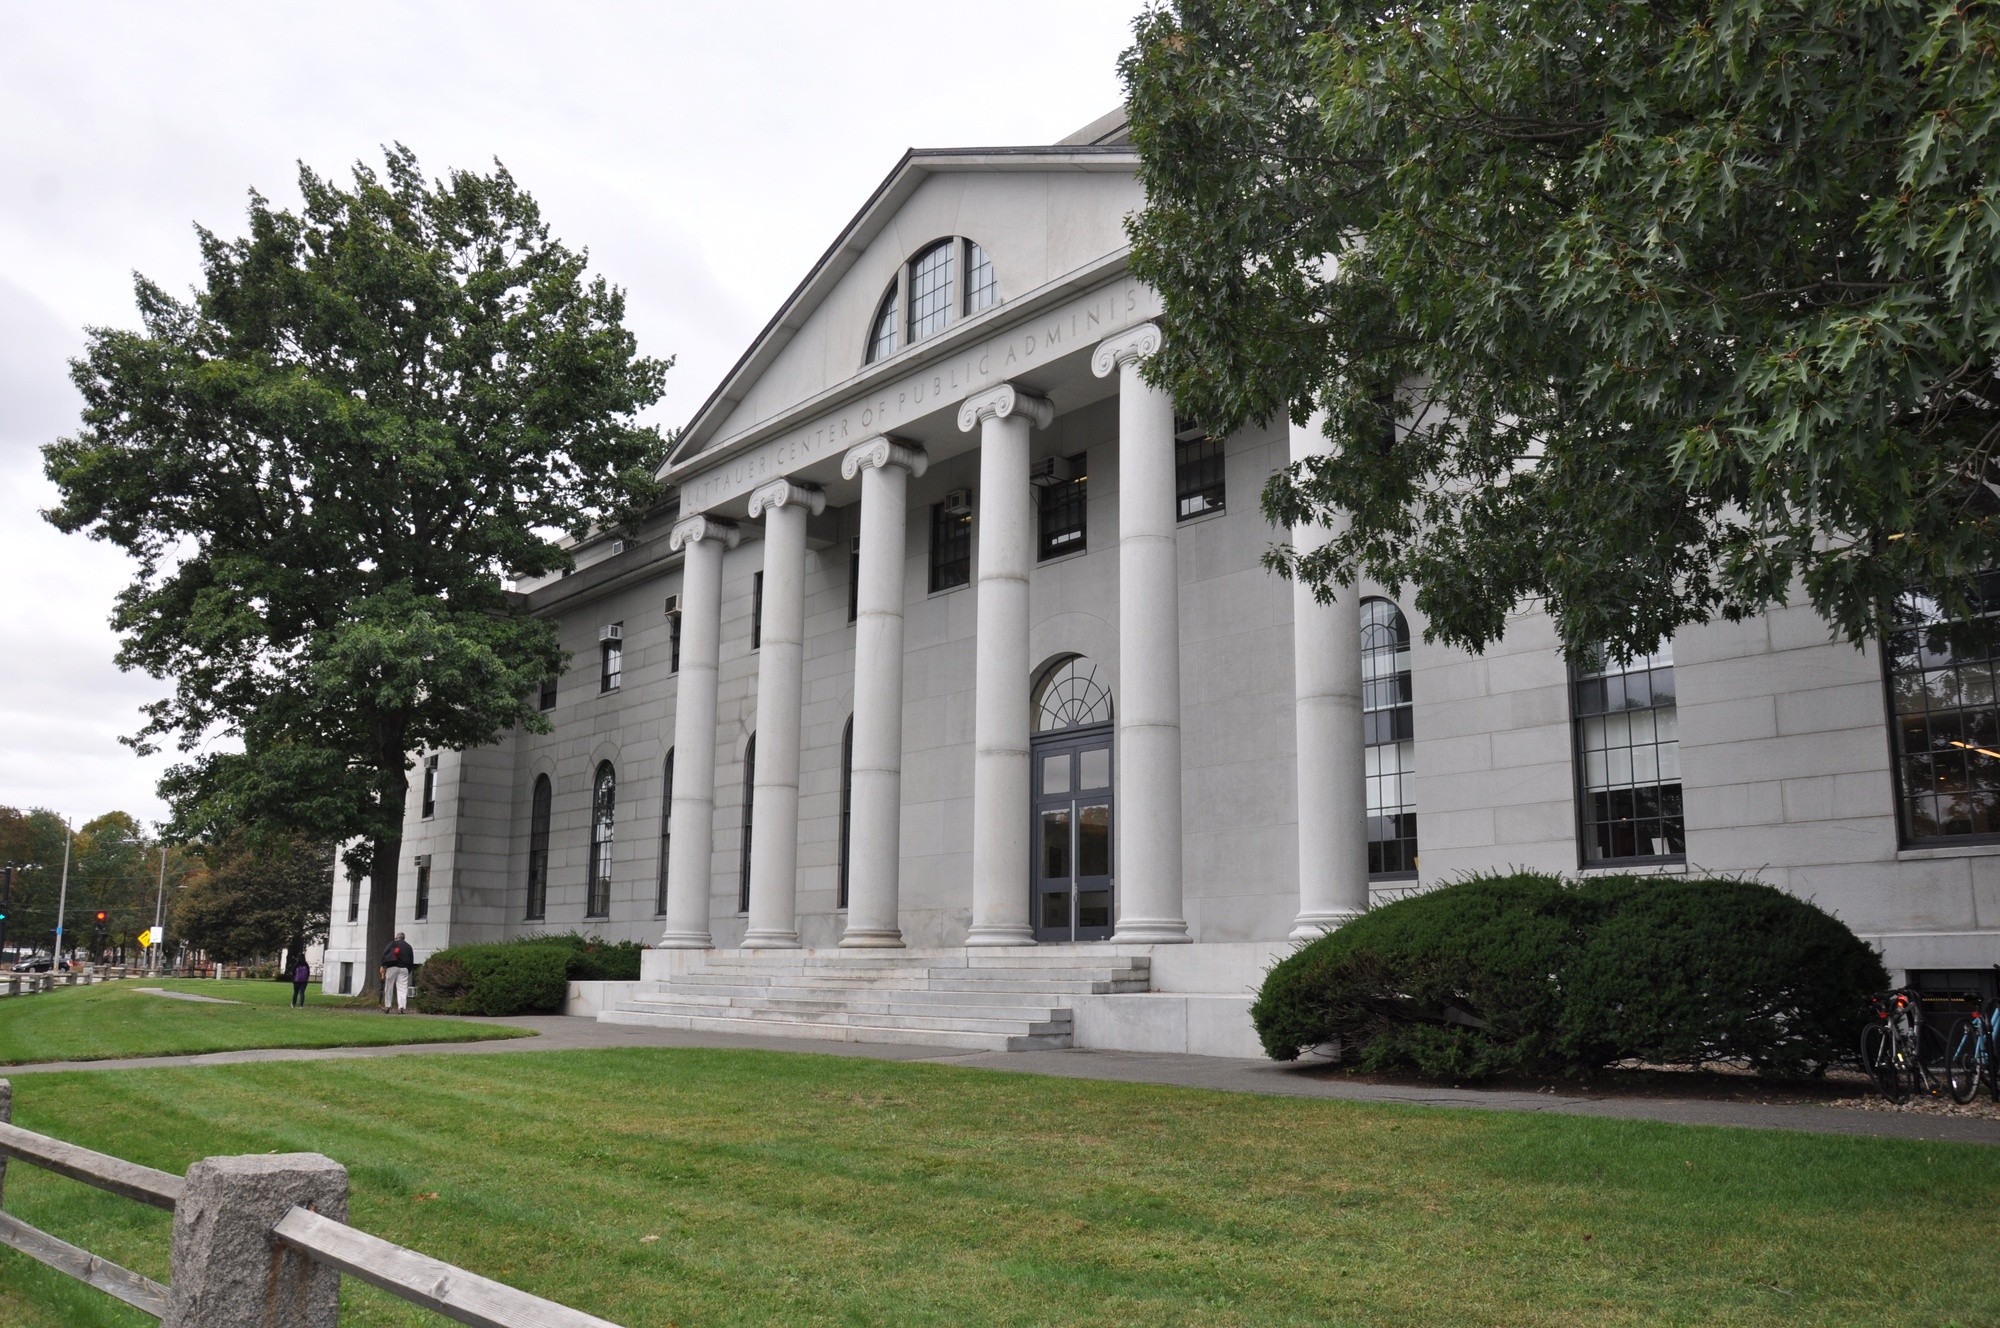 The Littauer Center for Public Administration Building is home to Harvard's Economics Department.